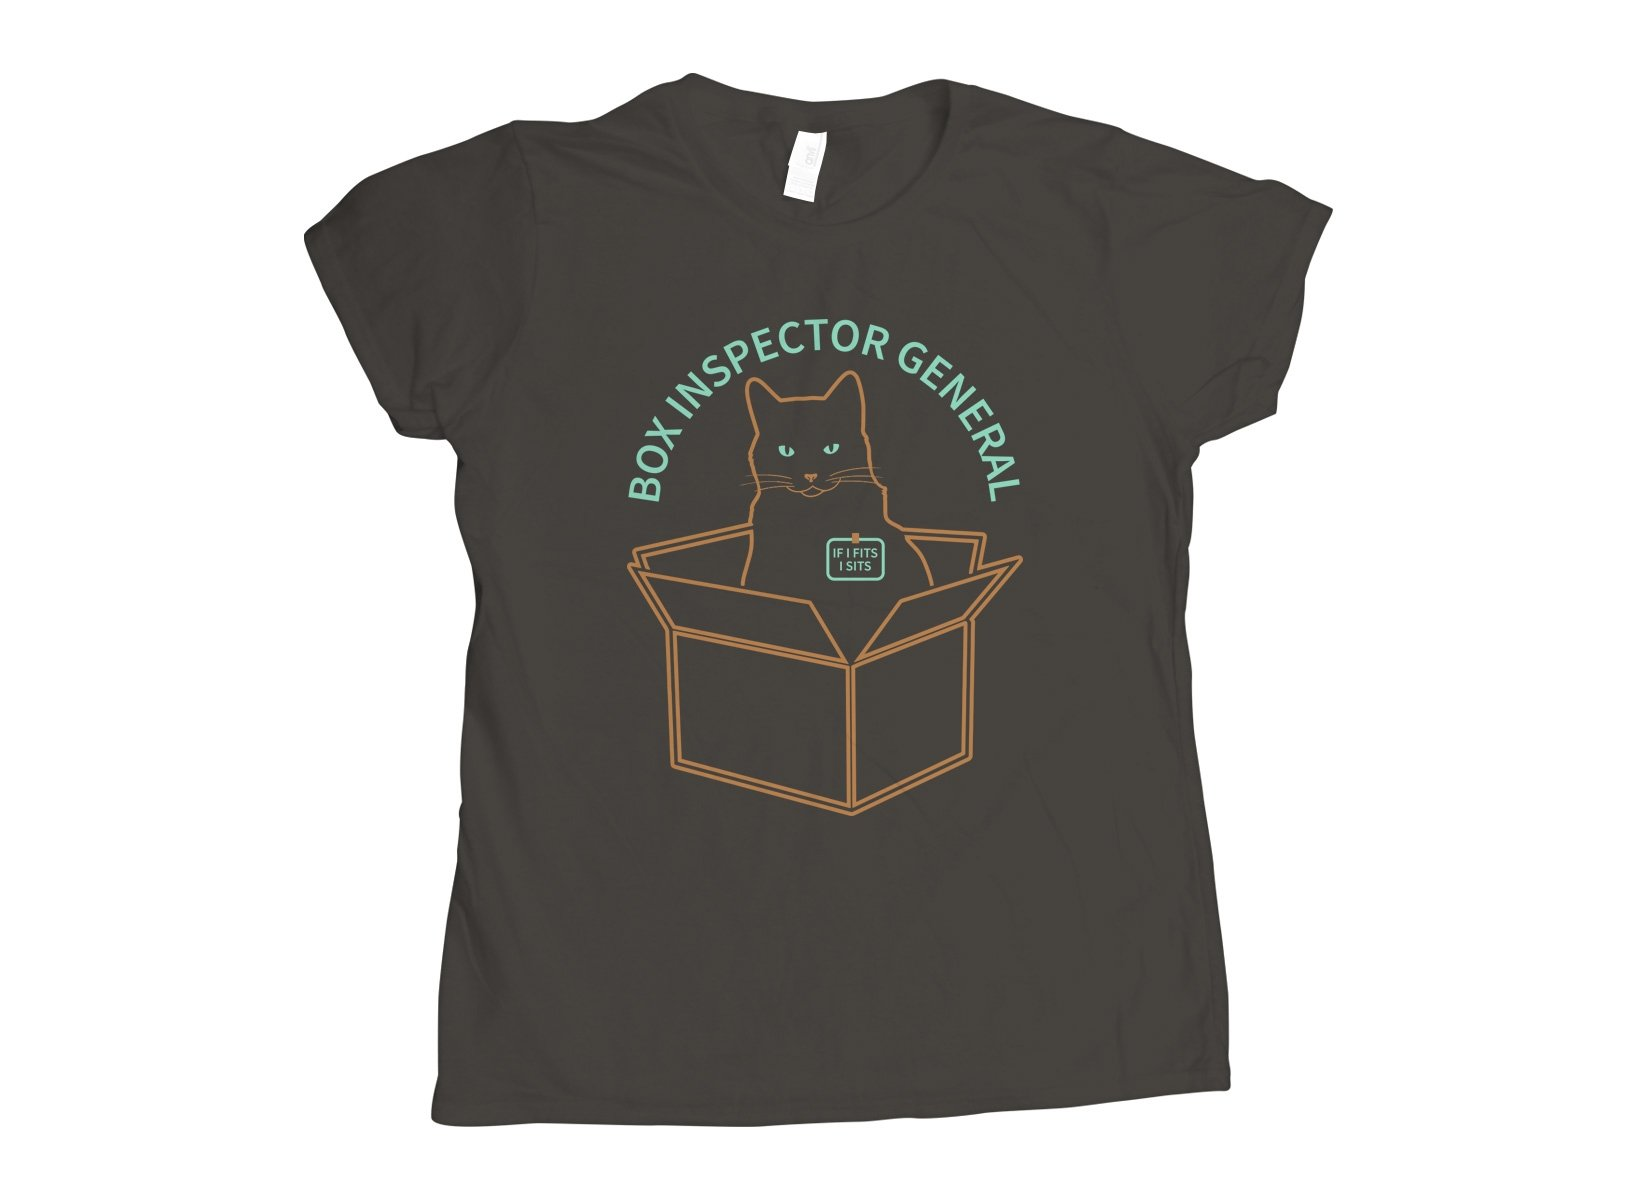 Box Inspector General on Womens T-Shirt